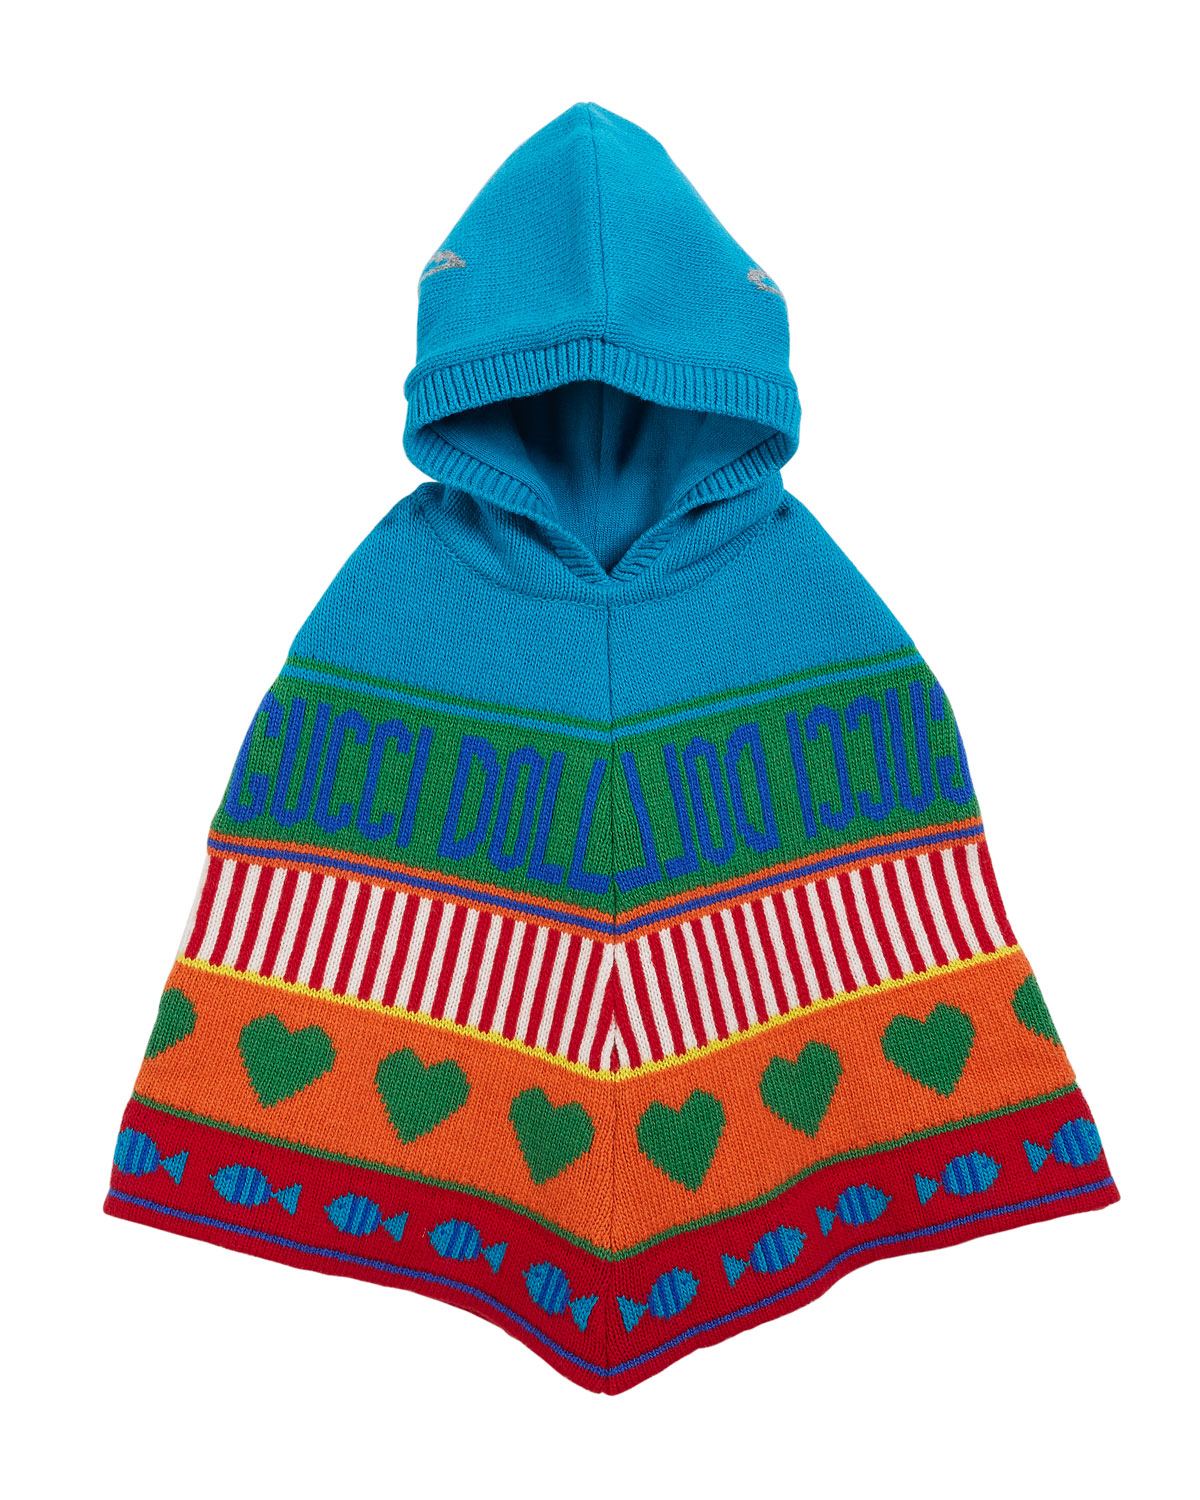 Rainbow Mixed-Jacquard Wool Hooded Poncho, Size 12-36 Months